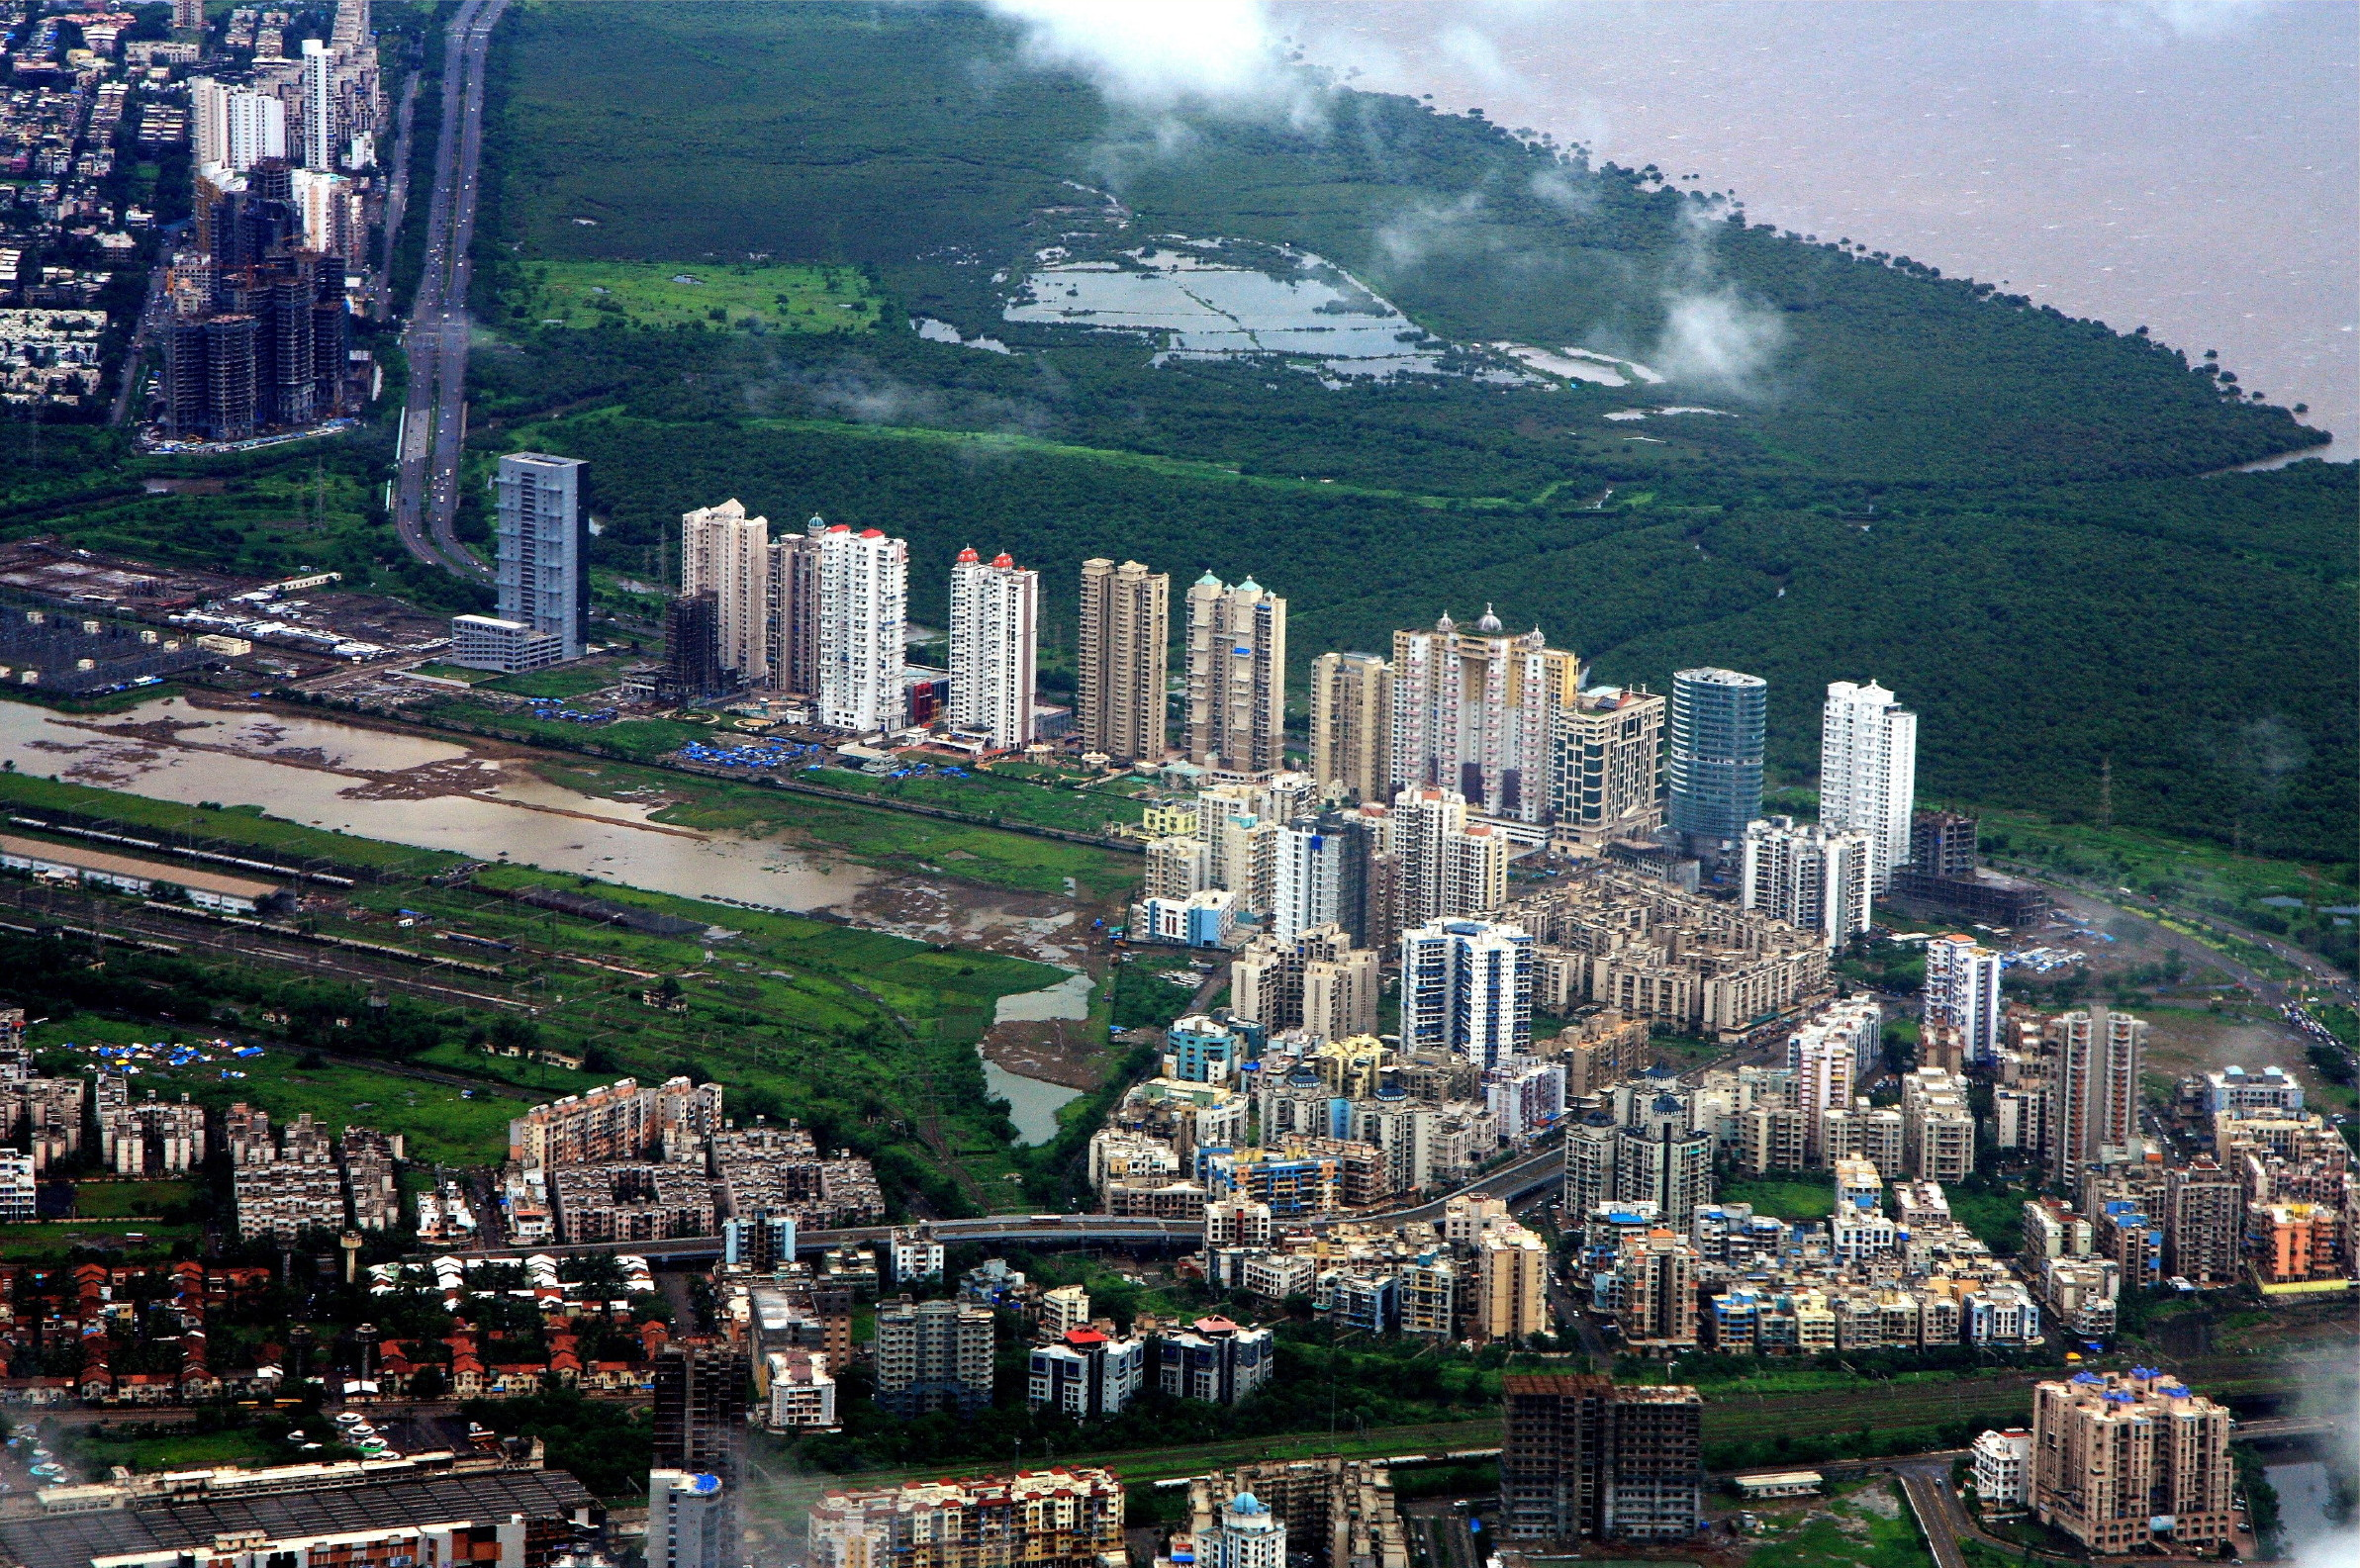 List of tallest buildings in Navi Mumbai - Wikipedia